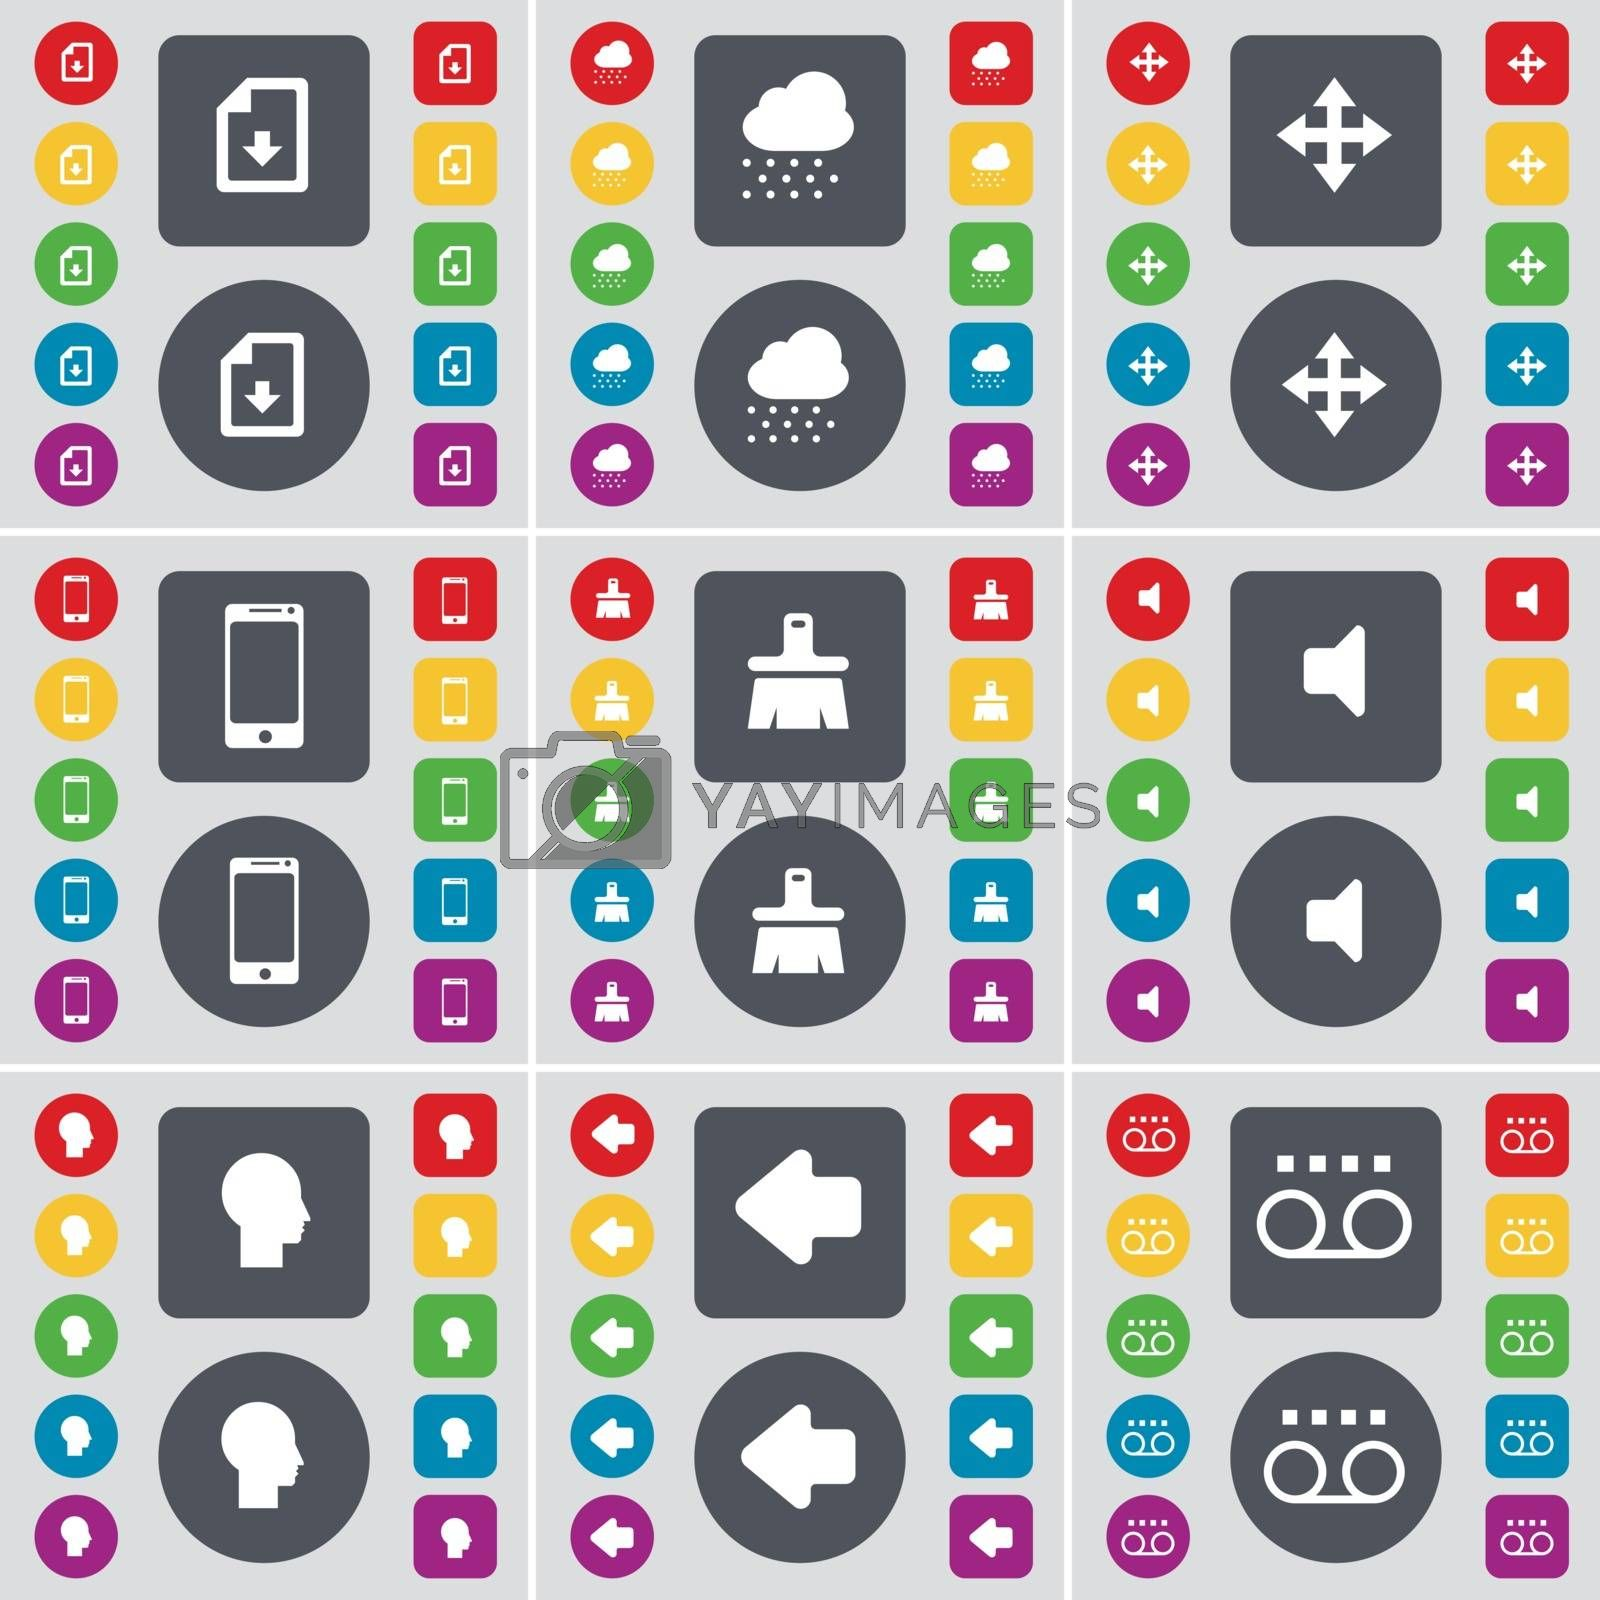 Royalty free image of Download file, Cloud, Moving, Smartphone, Brush, Sound, Silhouette, Arrow left, Cassette icon symbol. A large set of flat, colored buttons for your design. Vector by serhii_lohvyniuk